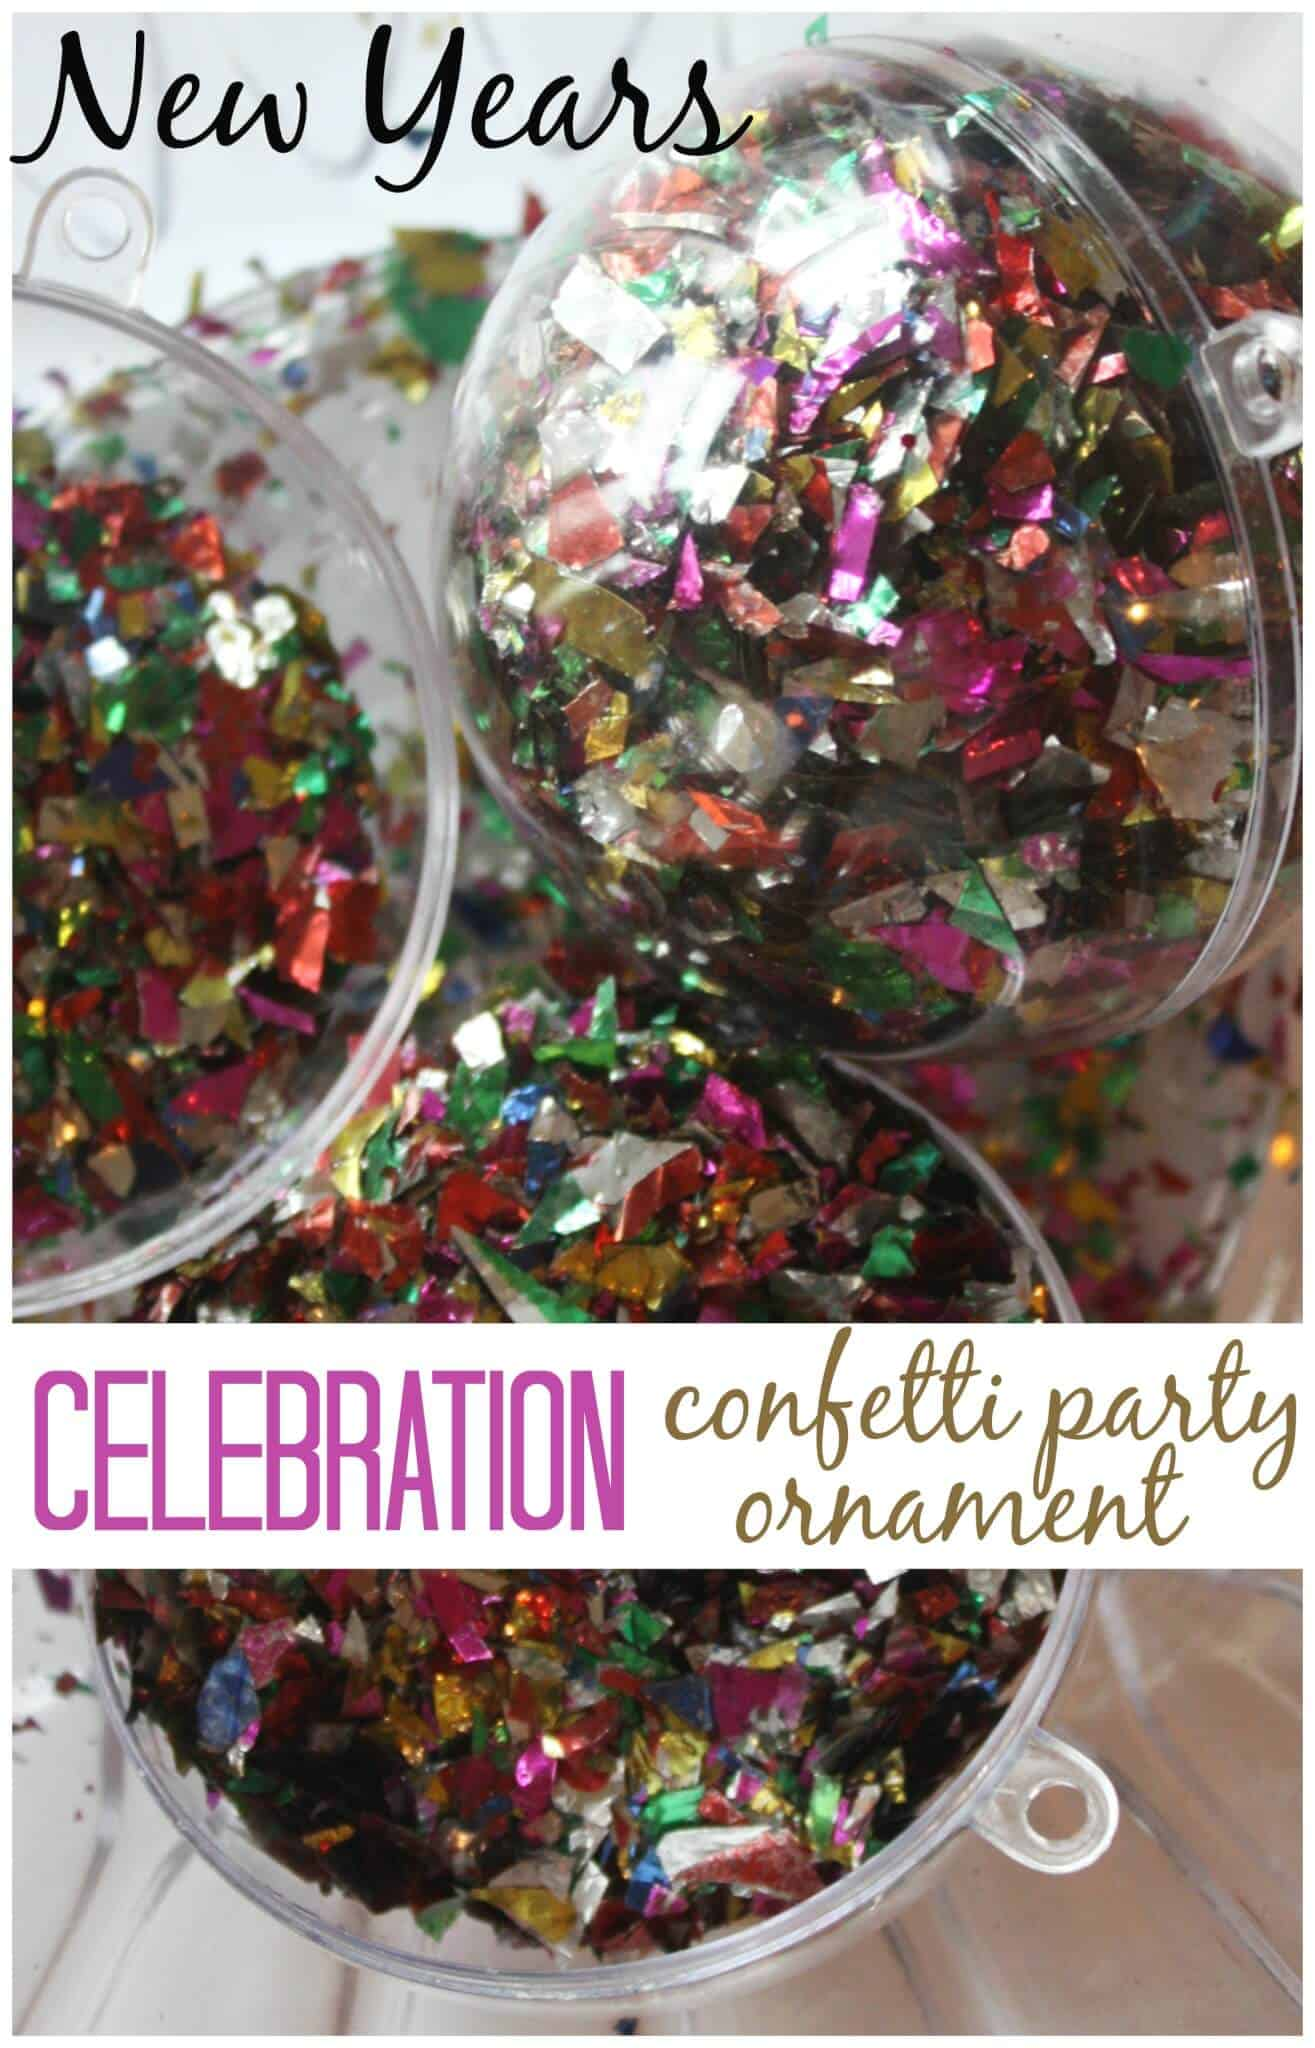 Confetti Ornaments New Years Party Idea for Kids